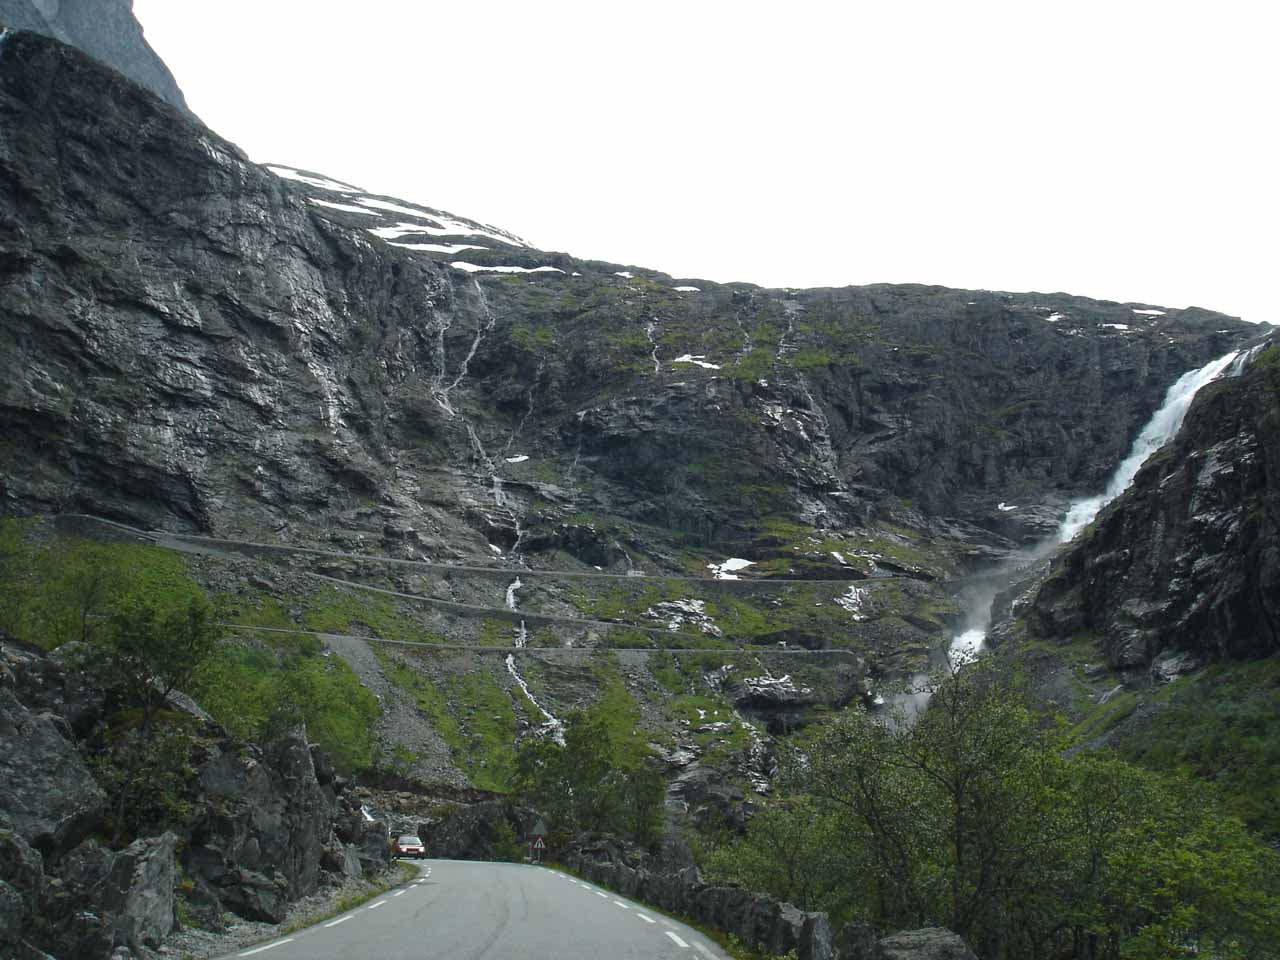 The imposing wall that Trollstigen would ascend with Stigfossen coming into view